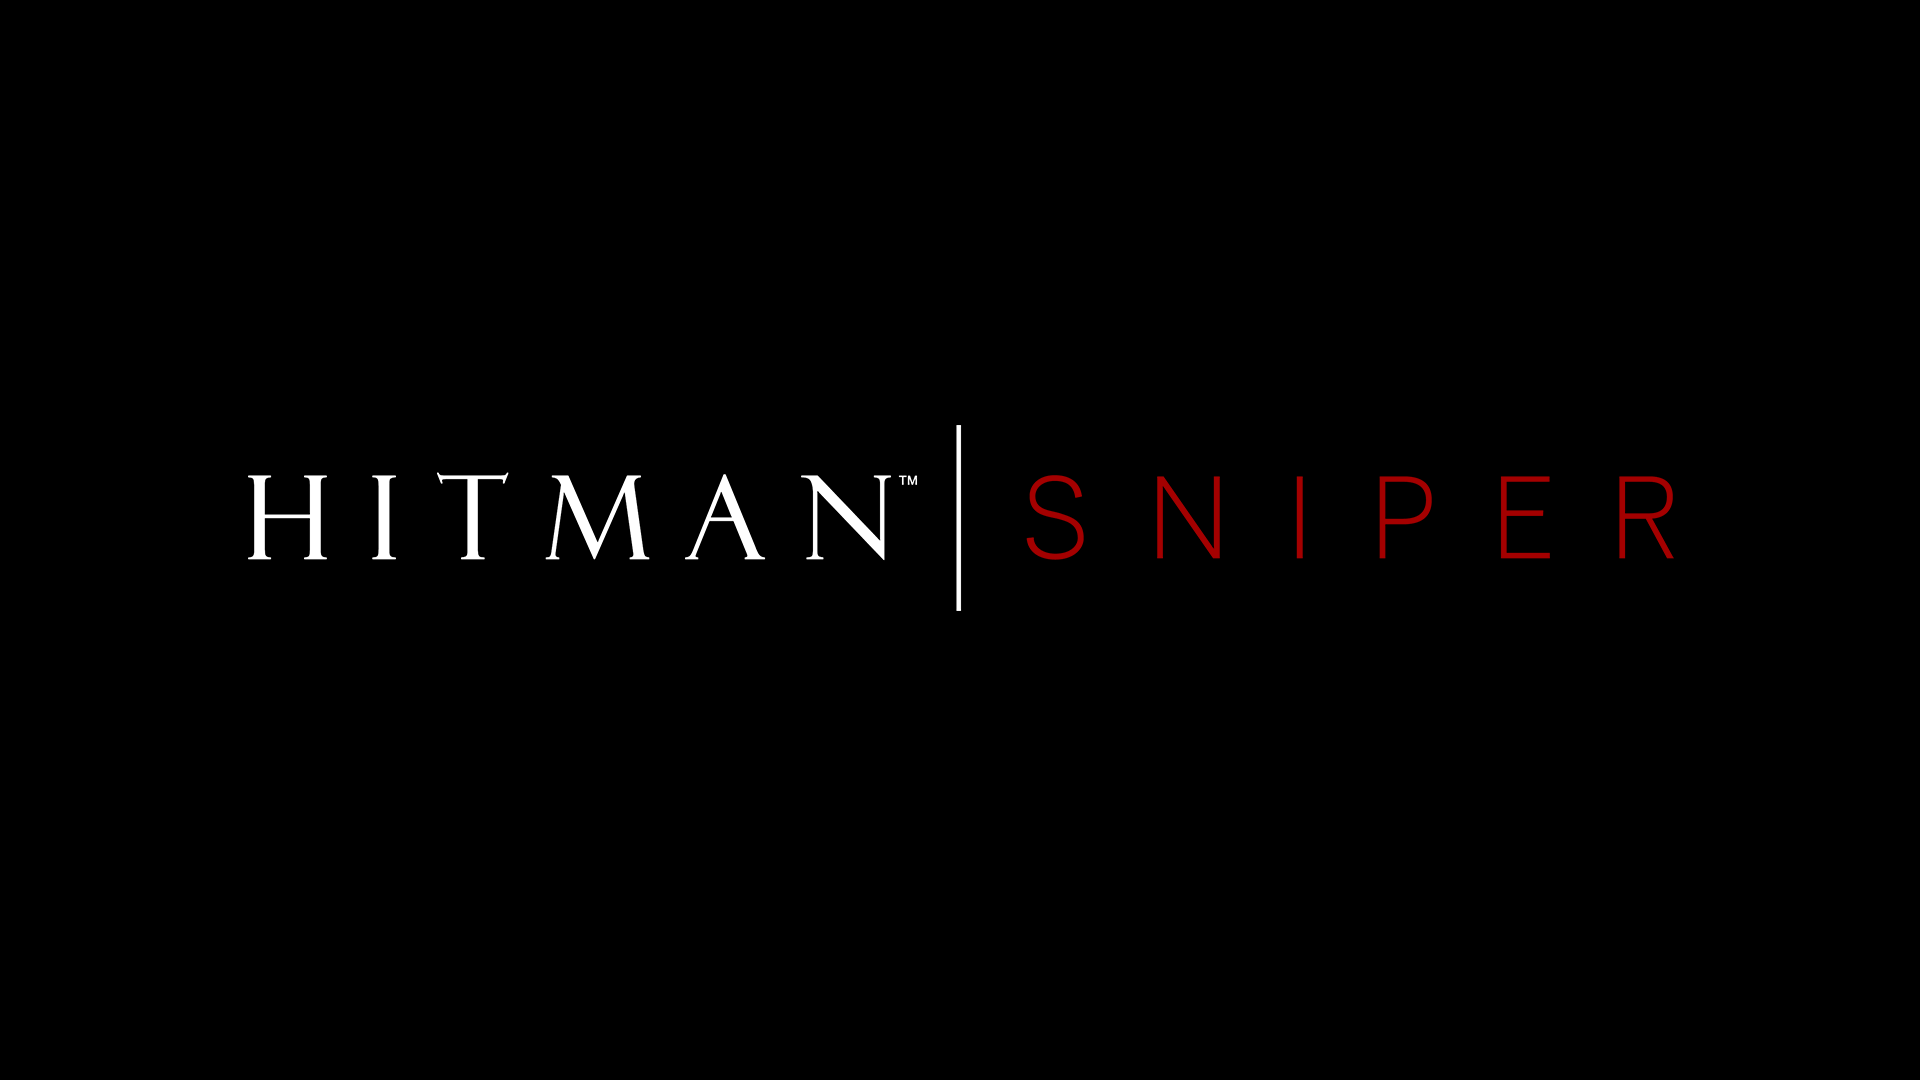 Hitman: Sniper Brings Calculated Violence To Mobile Devices